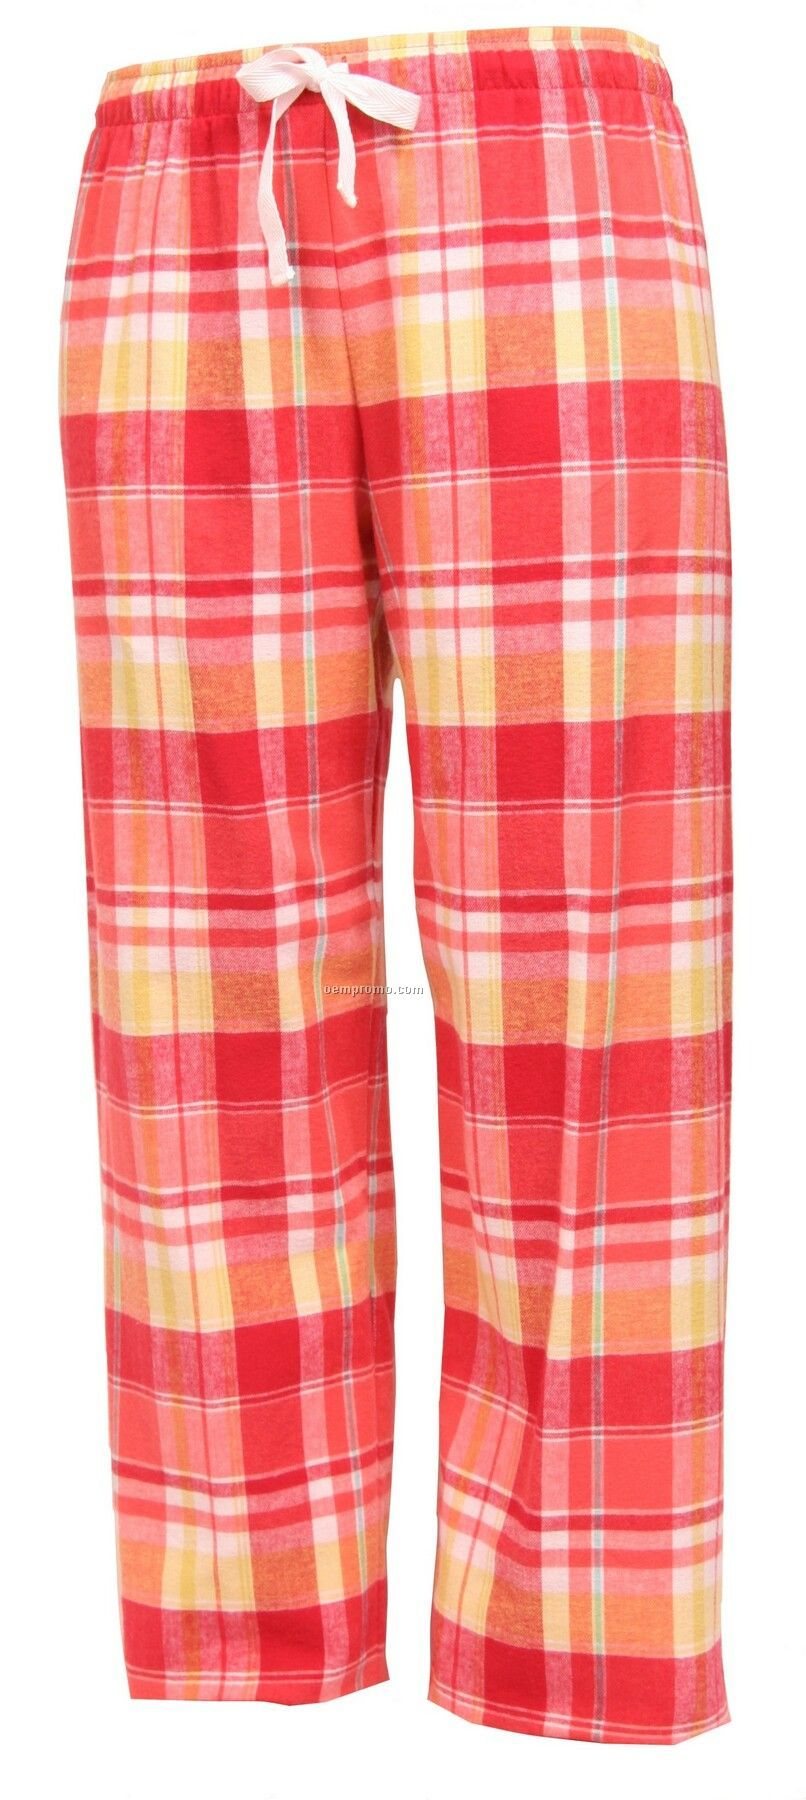 Adult Sunrise Fashion Flannel Pant With Tie Cord